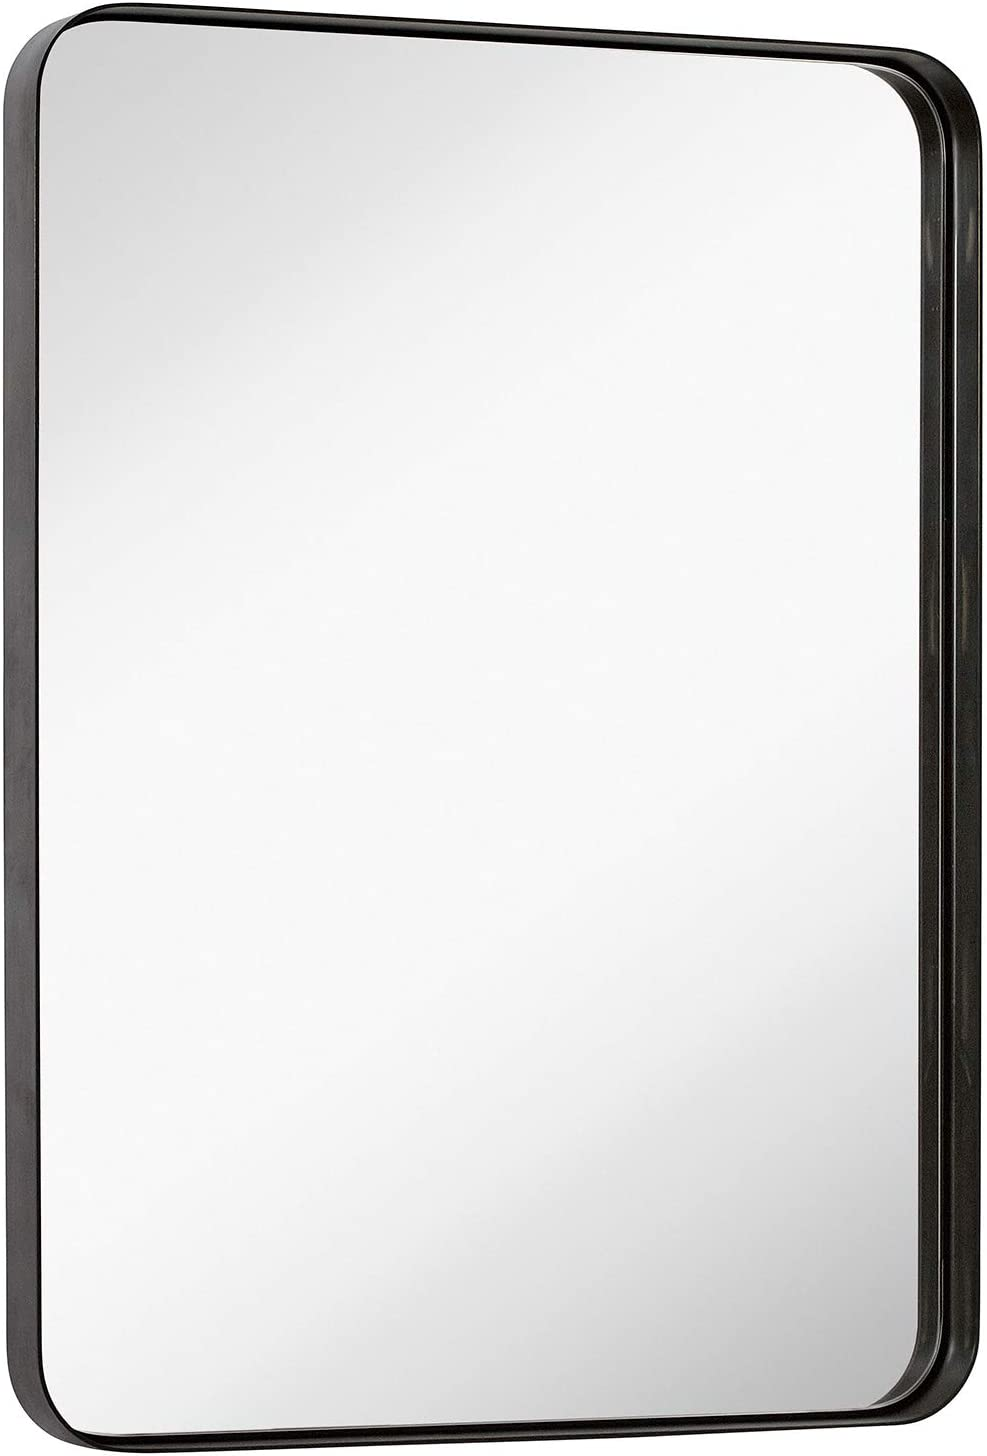 Hamilton Hills Contemporary Brushed Metal Wall Mirror | Glass Panel Bronze Framed Rounded Corner Deep Set Design | Mirrored Rectangle Hangs Horizontal or Vertical (22